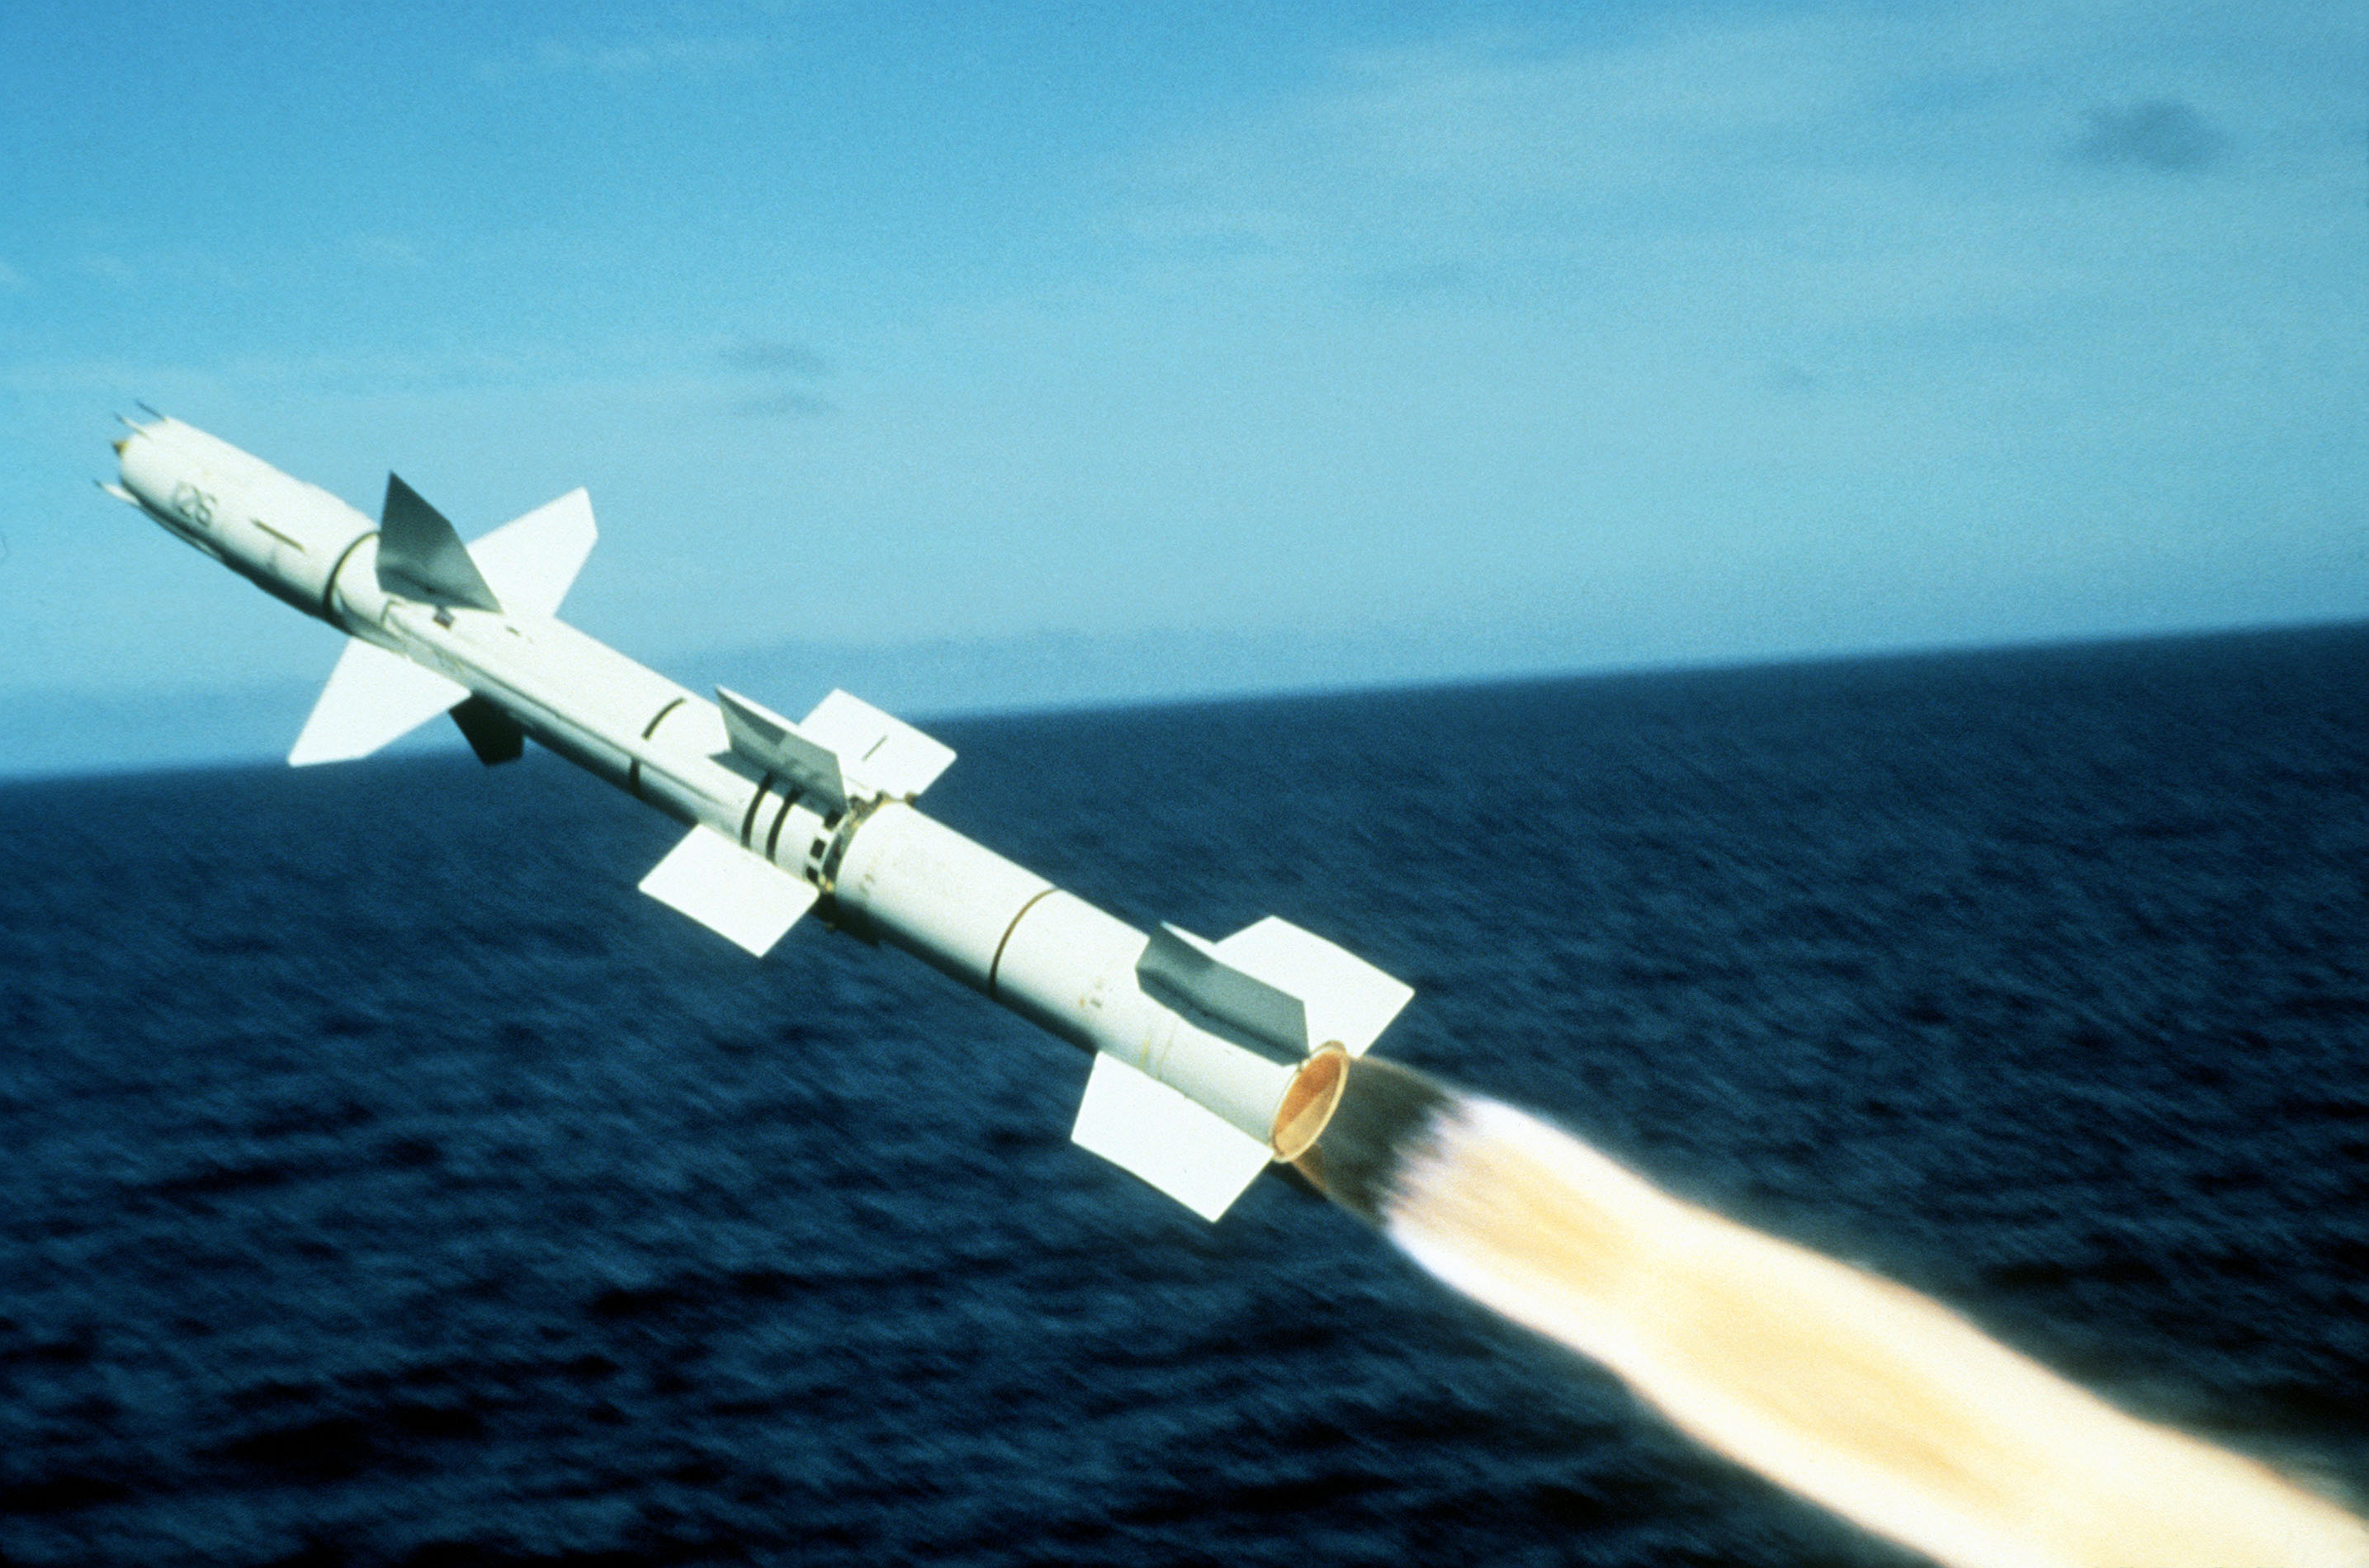 A view of a Talos surface-to-air guided missile, moments after being launched from the starboard side of the guided missile cruiser USS OKLAHOMA CITY (CG 5) at the Pacific Missile Test Range. This is the final firing of the Talos missile by the United States Navy conducted on 1 Nov 1979 National Archive# NN33300514 2005-06-30 by PH1 DAVID C. MACLEAN.